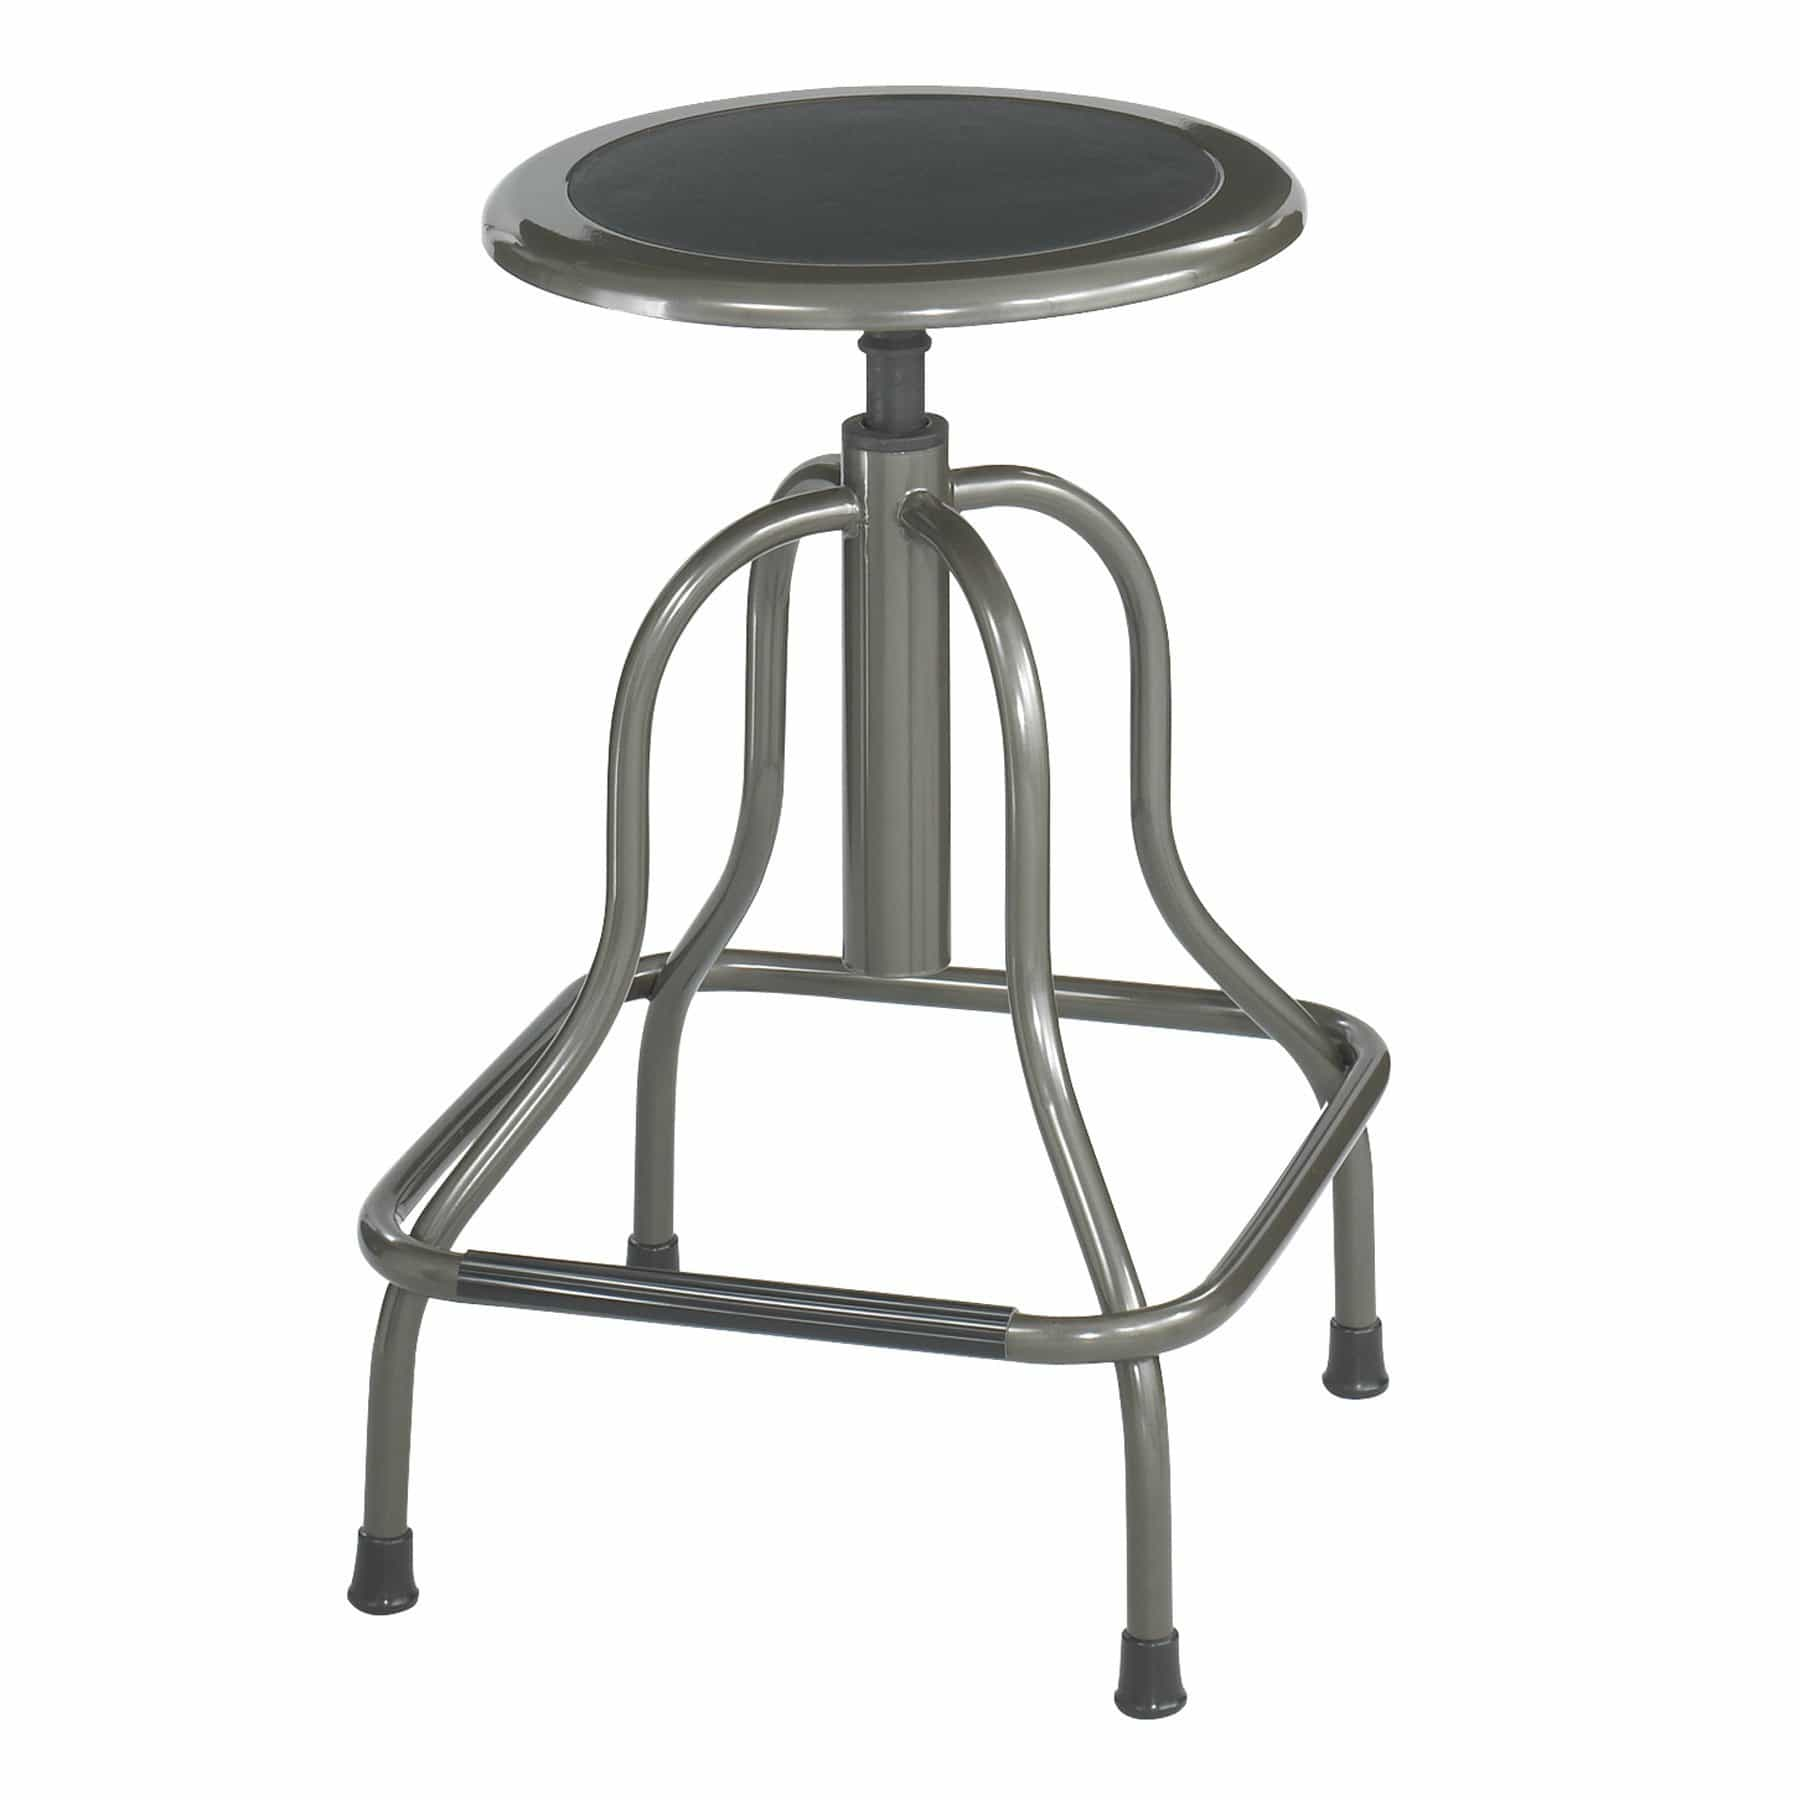 bedinhome - Industrial Seating 250 lbs Capacity Recycled Leather Padded Steel Stool - Safco - Stool